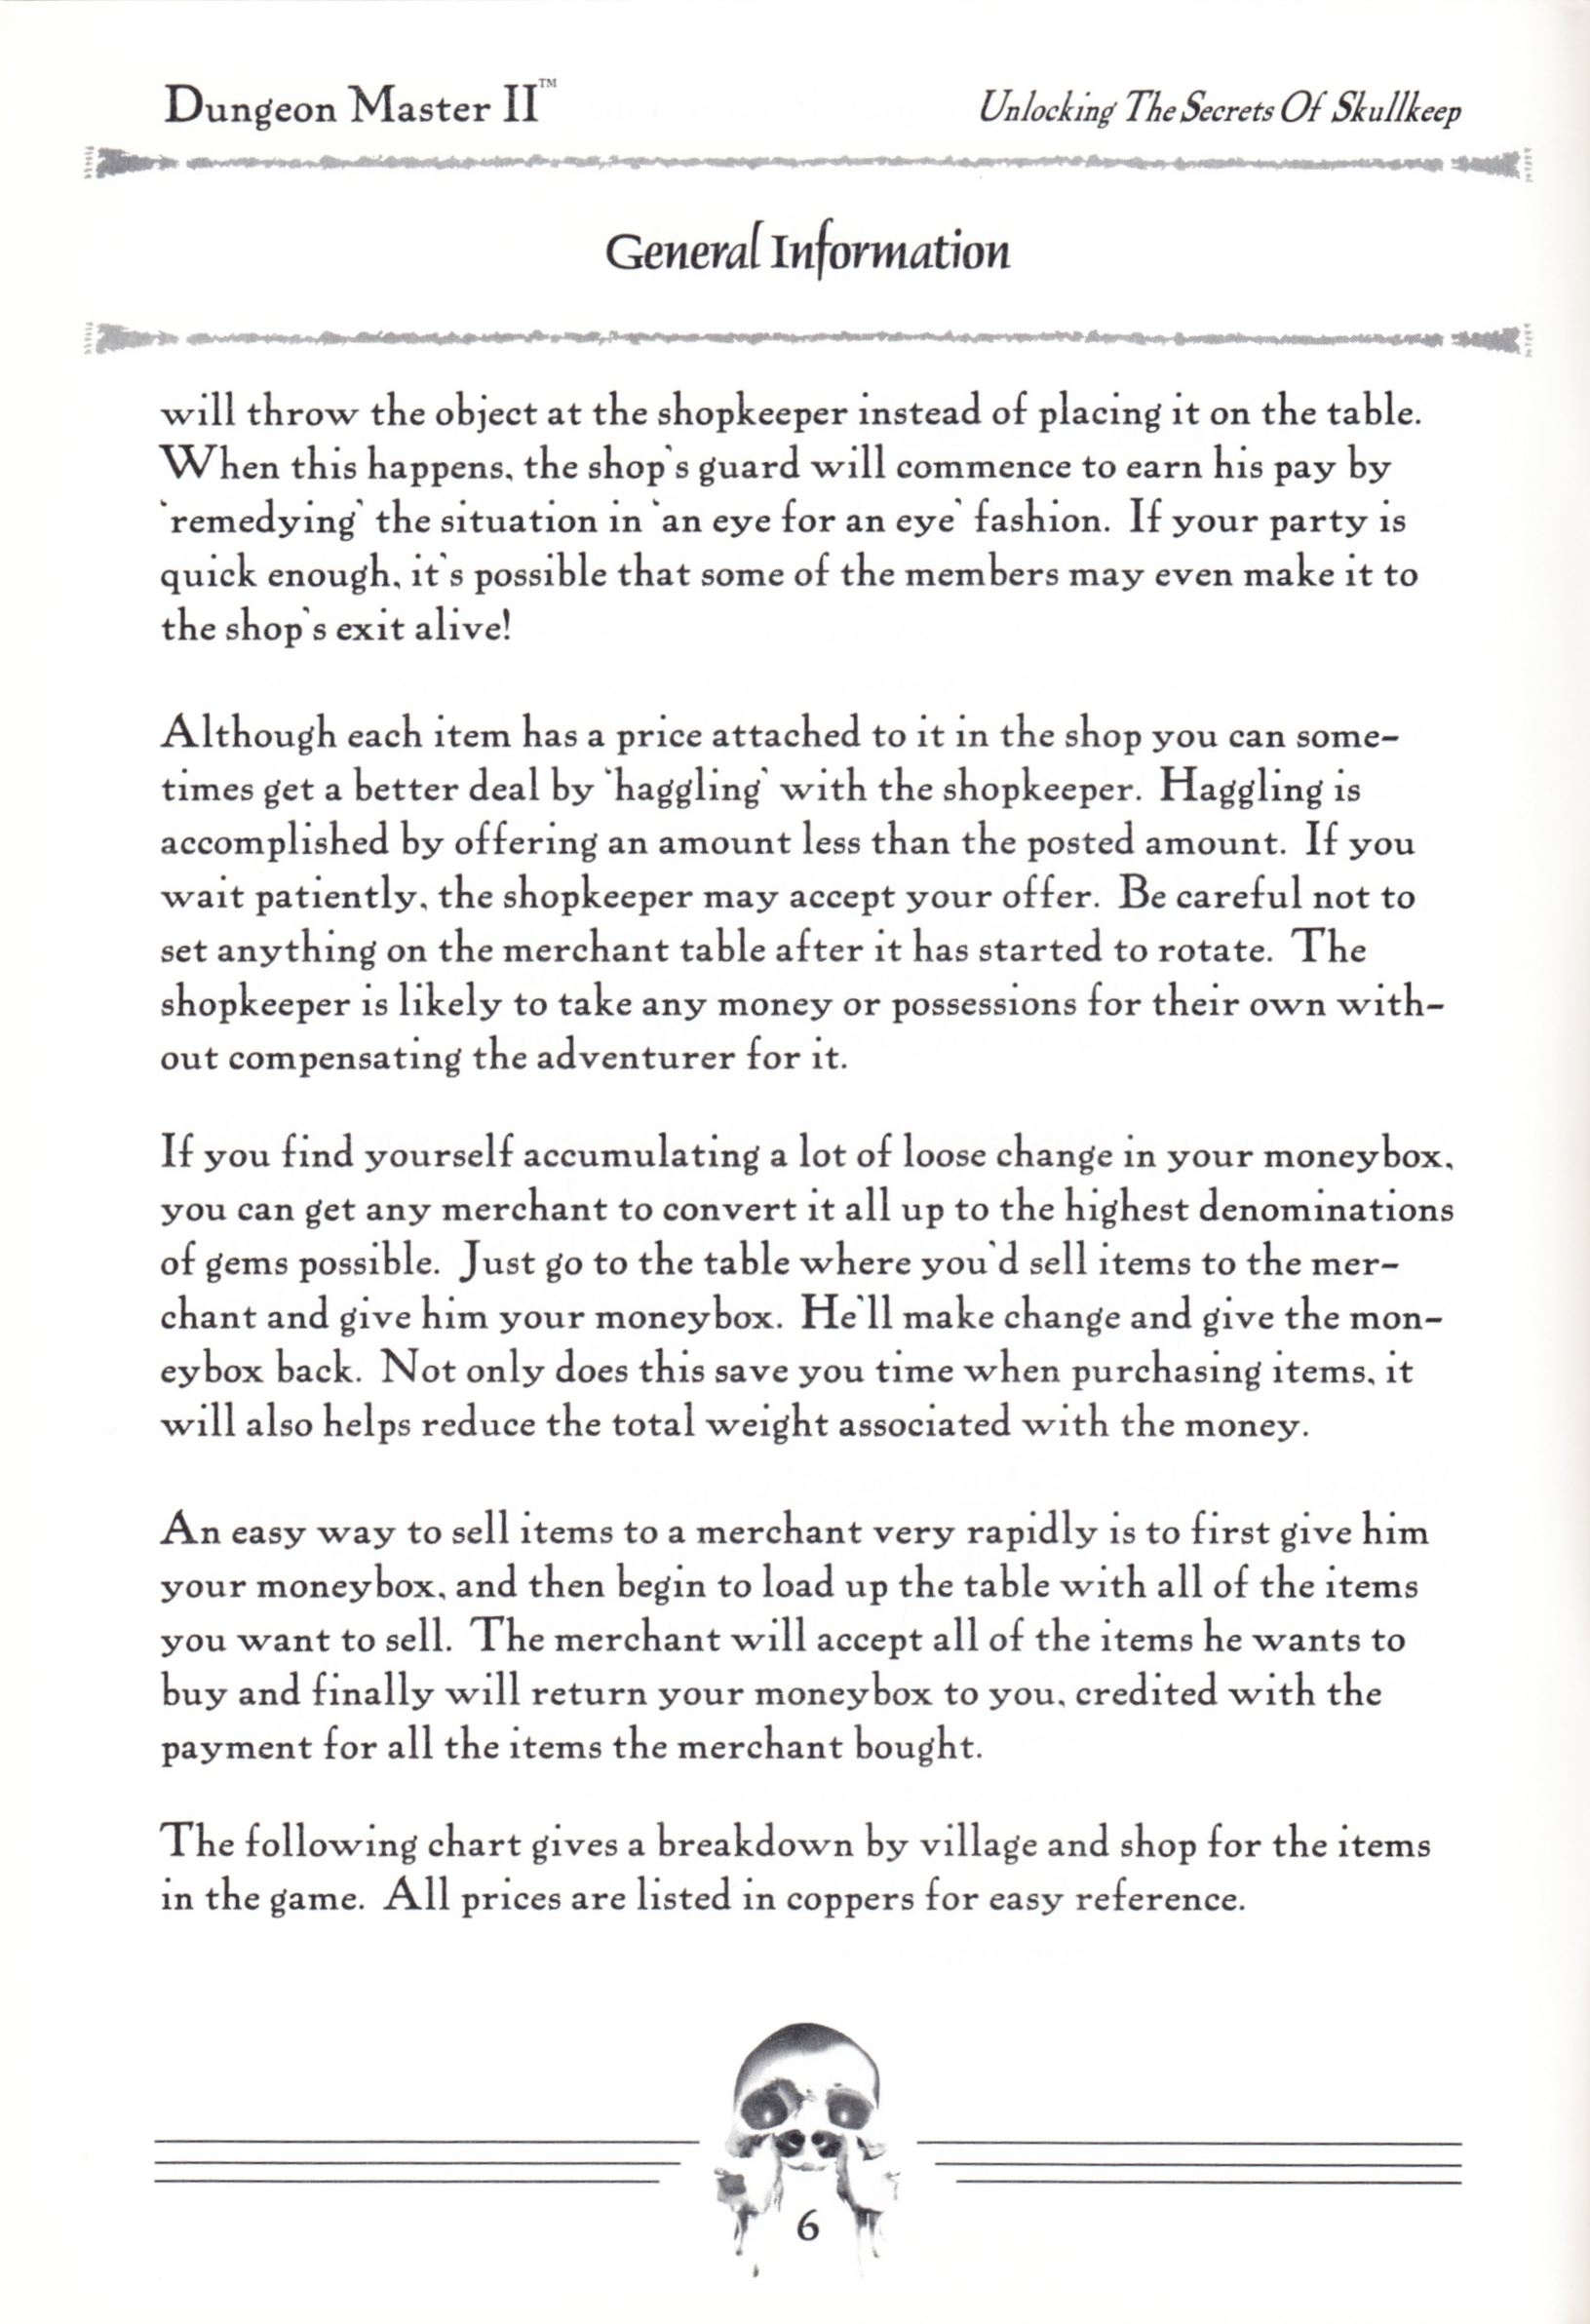 Hint Book - Dungeon Master II Clue Book - US - Page 008 - Scan